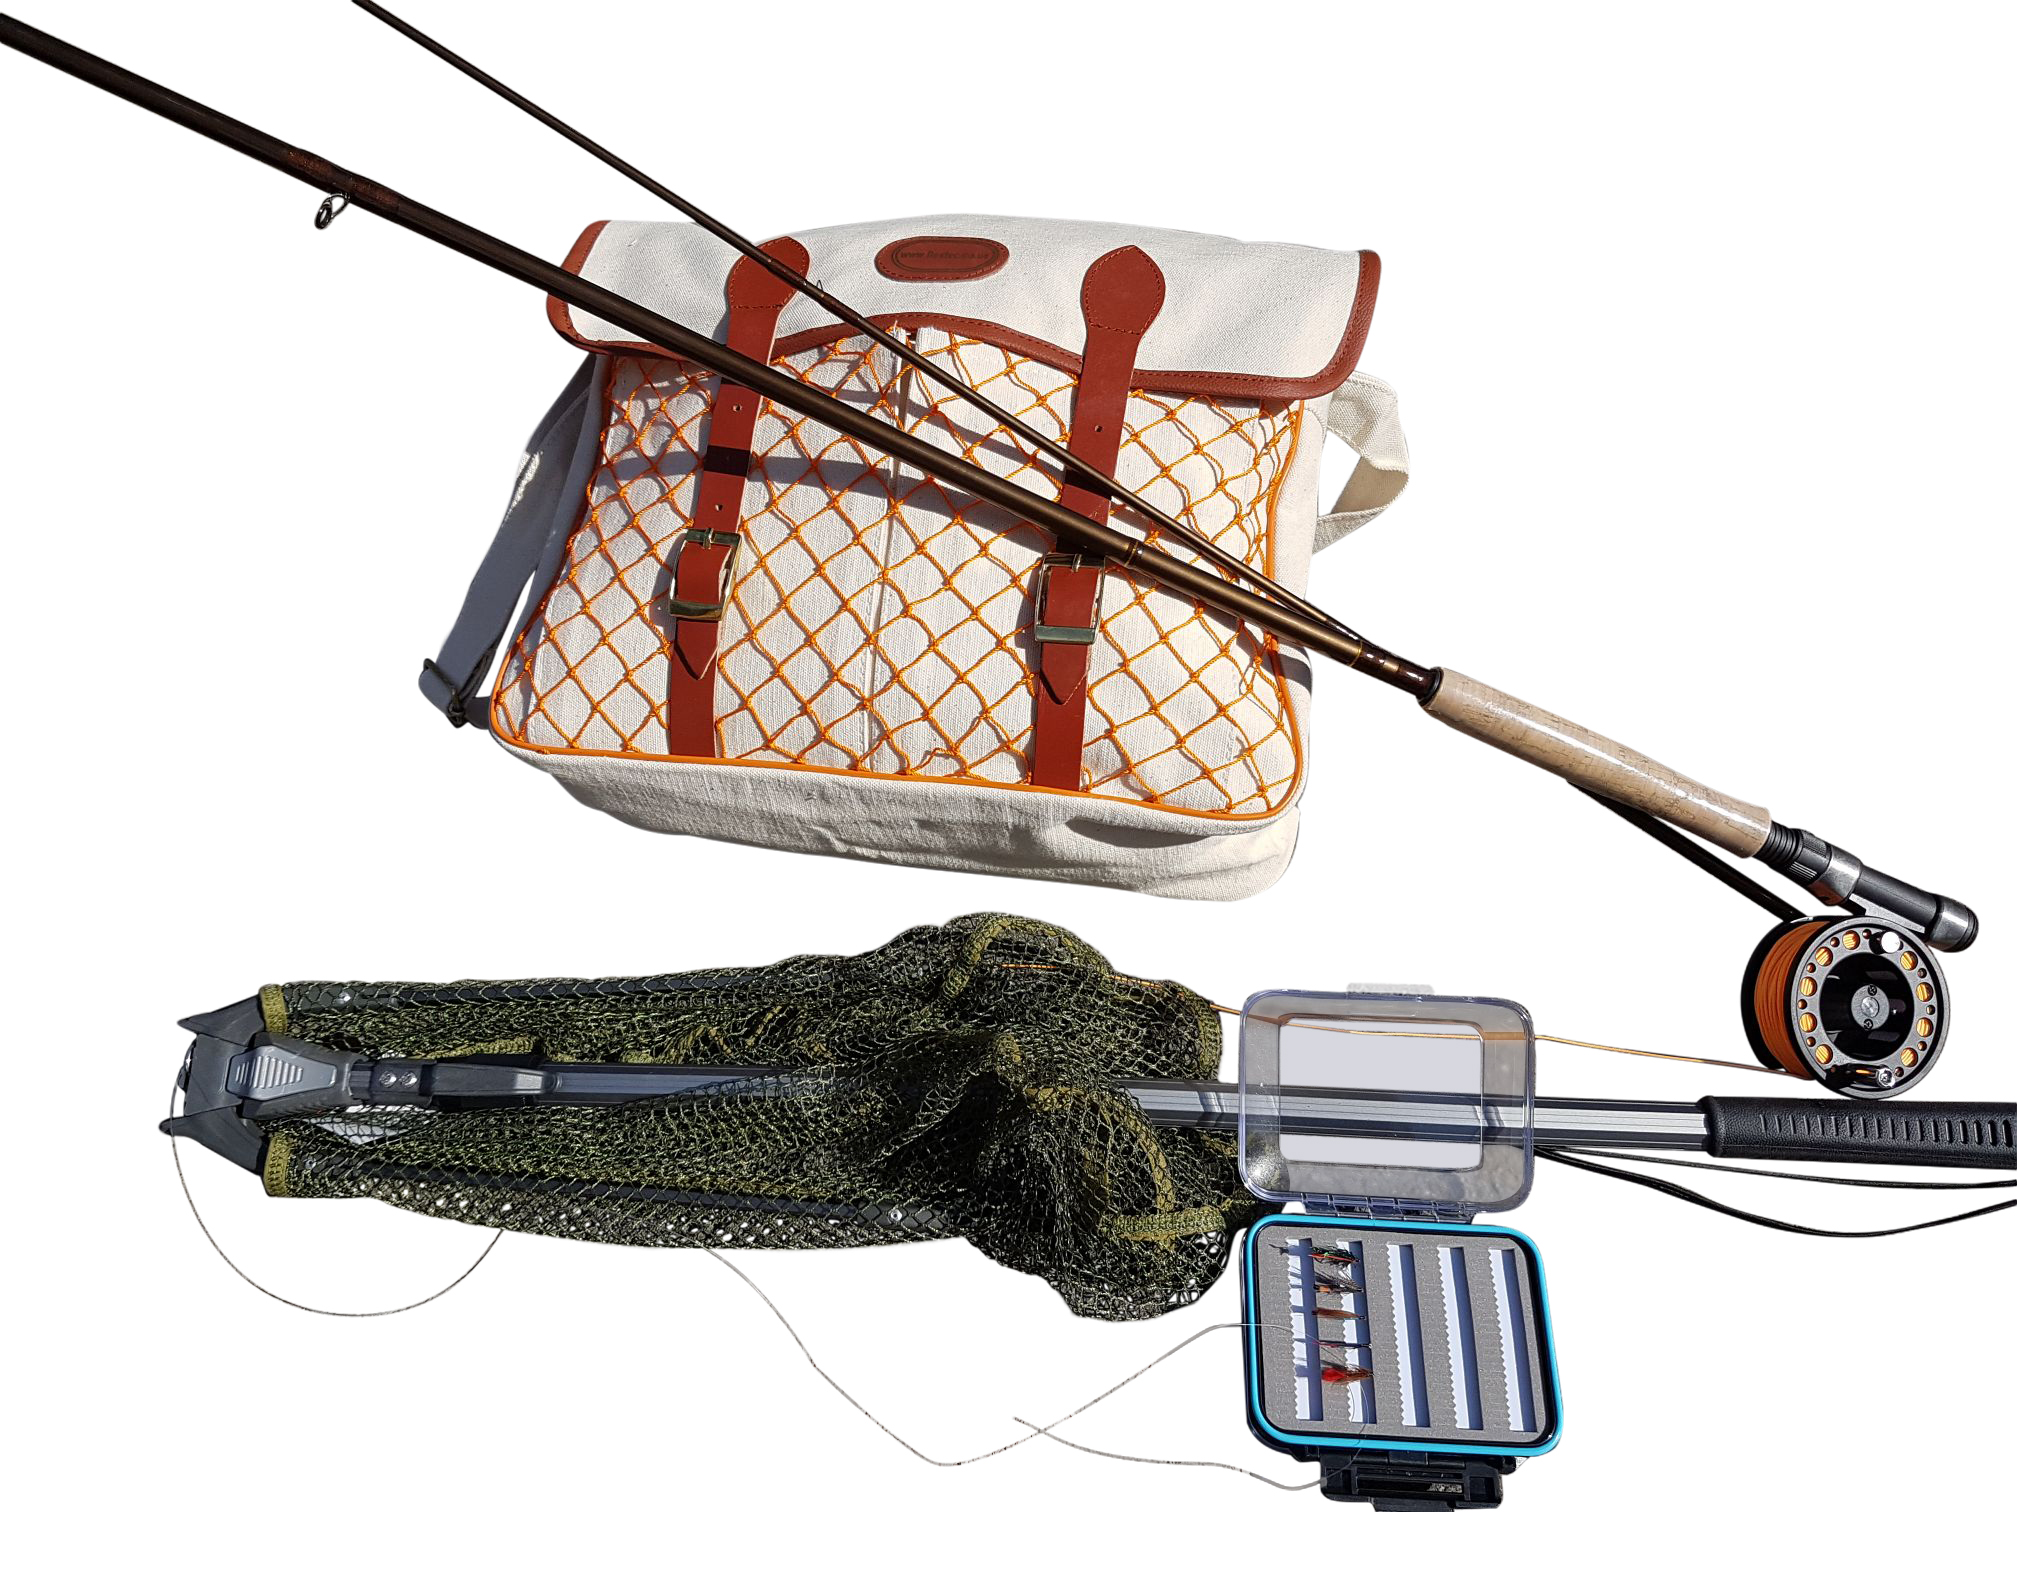 starter beginners fly fishing kit with rod reel landing